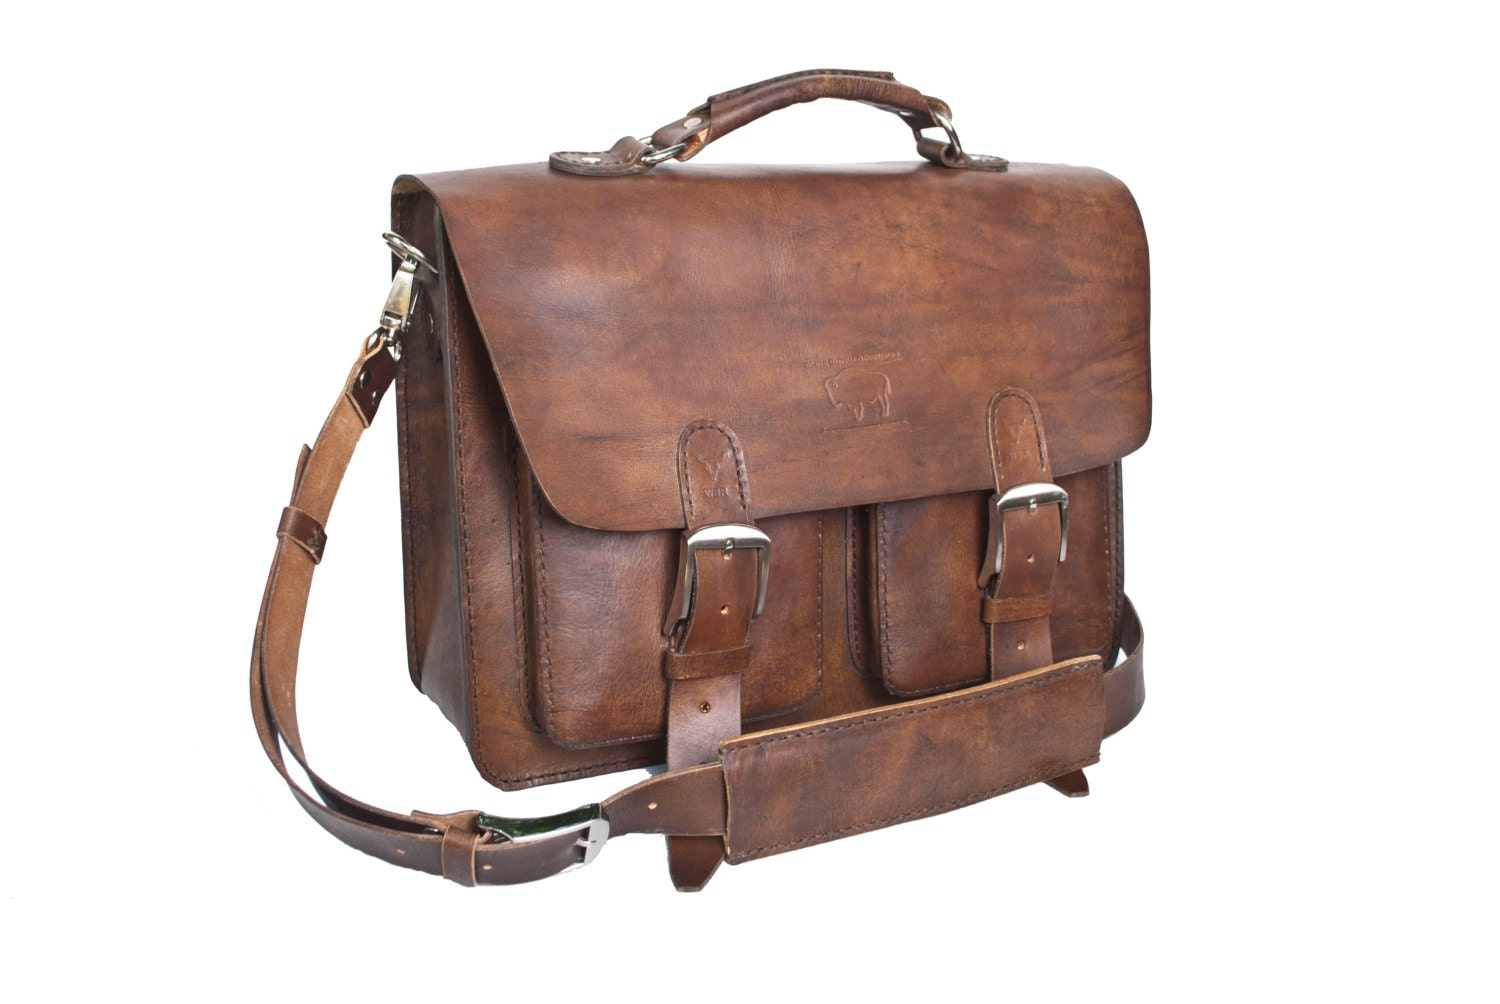 Men's messenger bags are great for any guy who is trying to achieve a casual yet professional look. Because they are easy and comfortable to carry, many men who use public transportation or do a lot of walking to and from places prefer using a messenger bag.